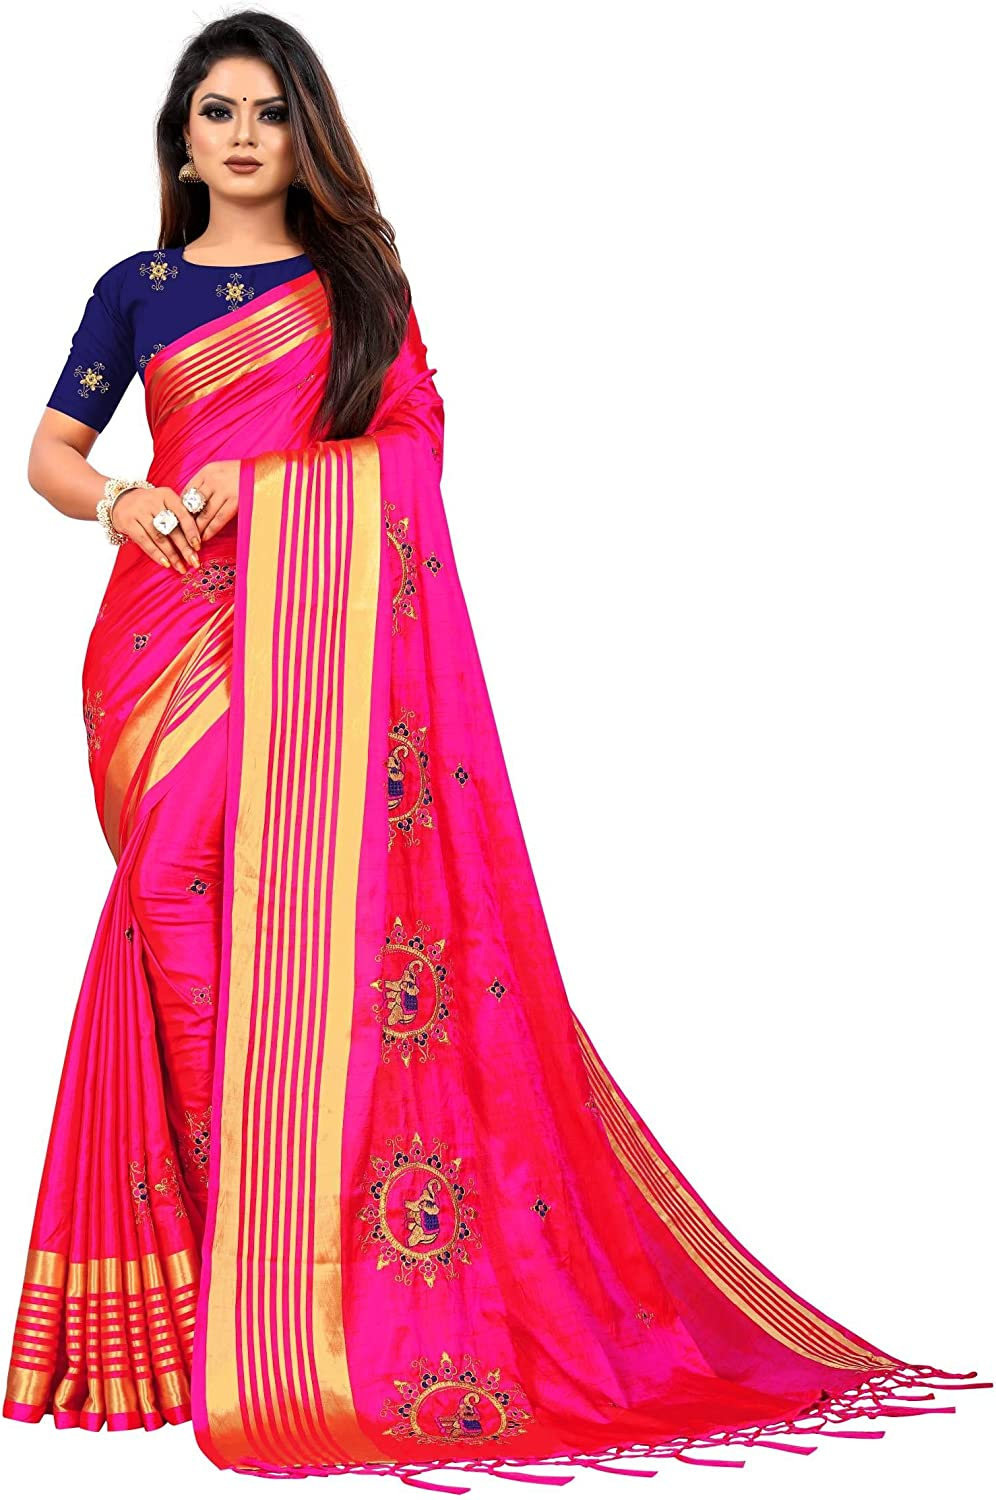 sale kfgroup Women's Embroidered Sana Al sold out. Silk Ethnic Indian Saree Dresse